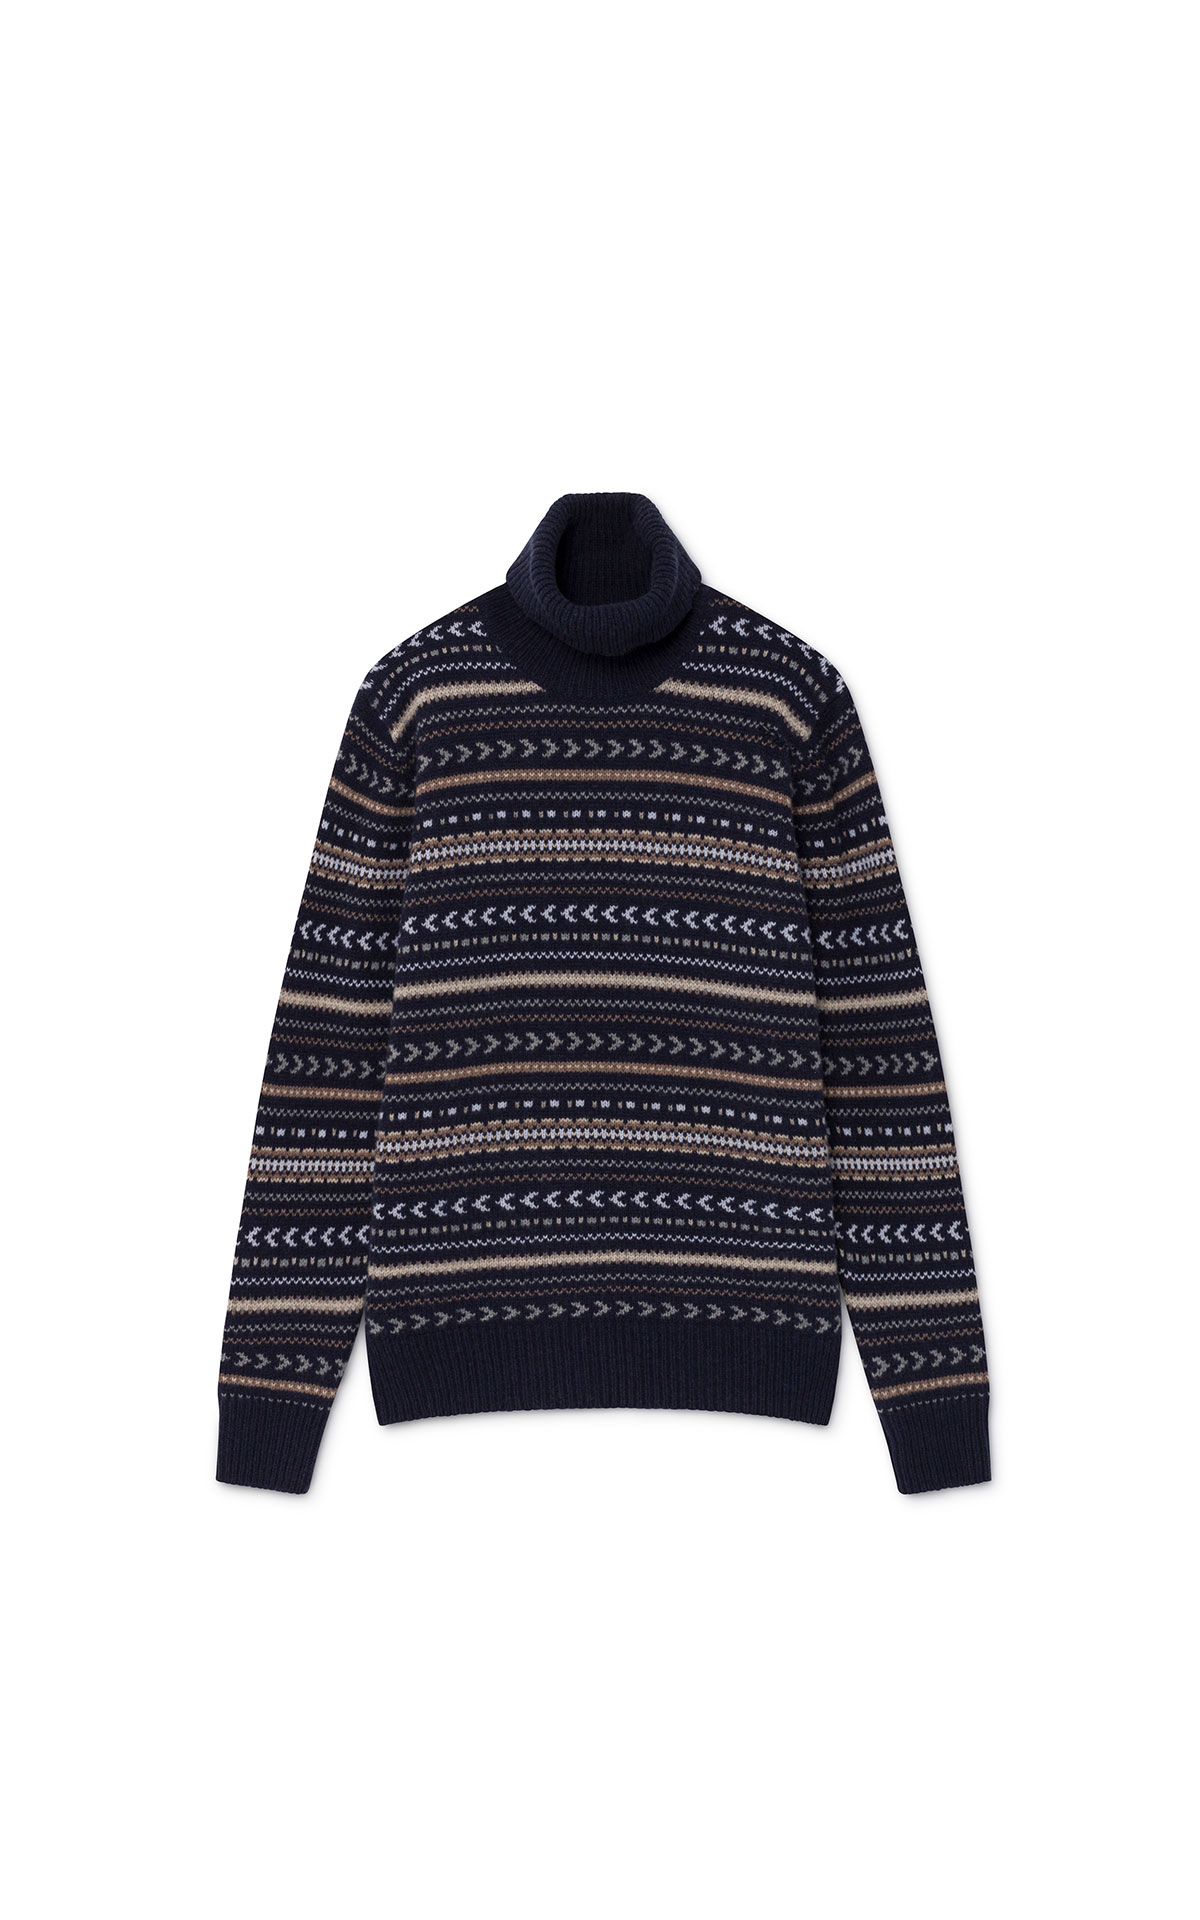 Hackett fairisle roll neck at The Bicester Village Shopping Collection